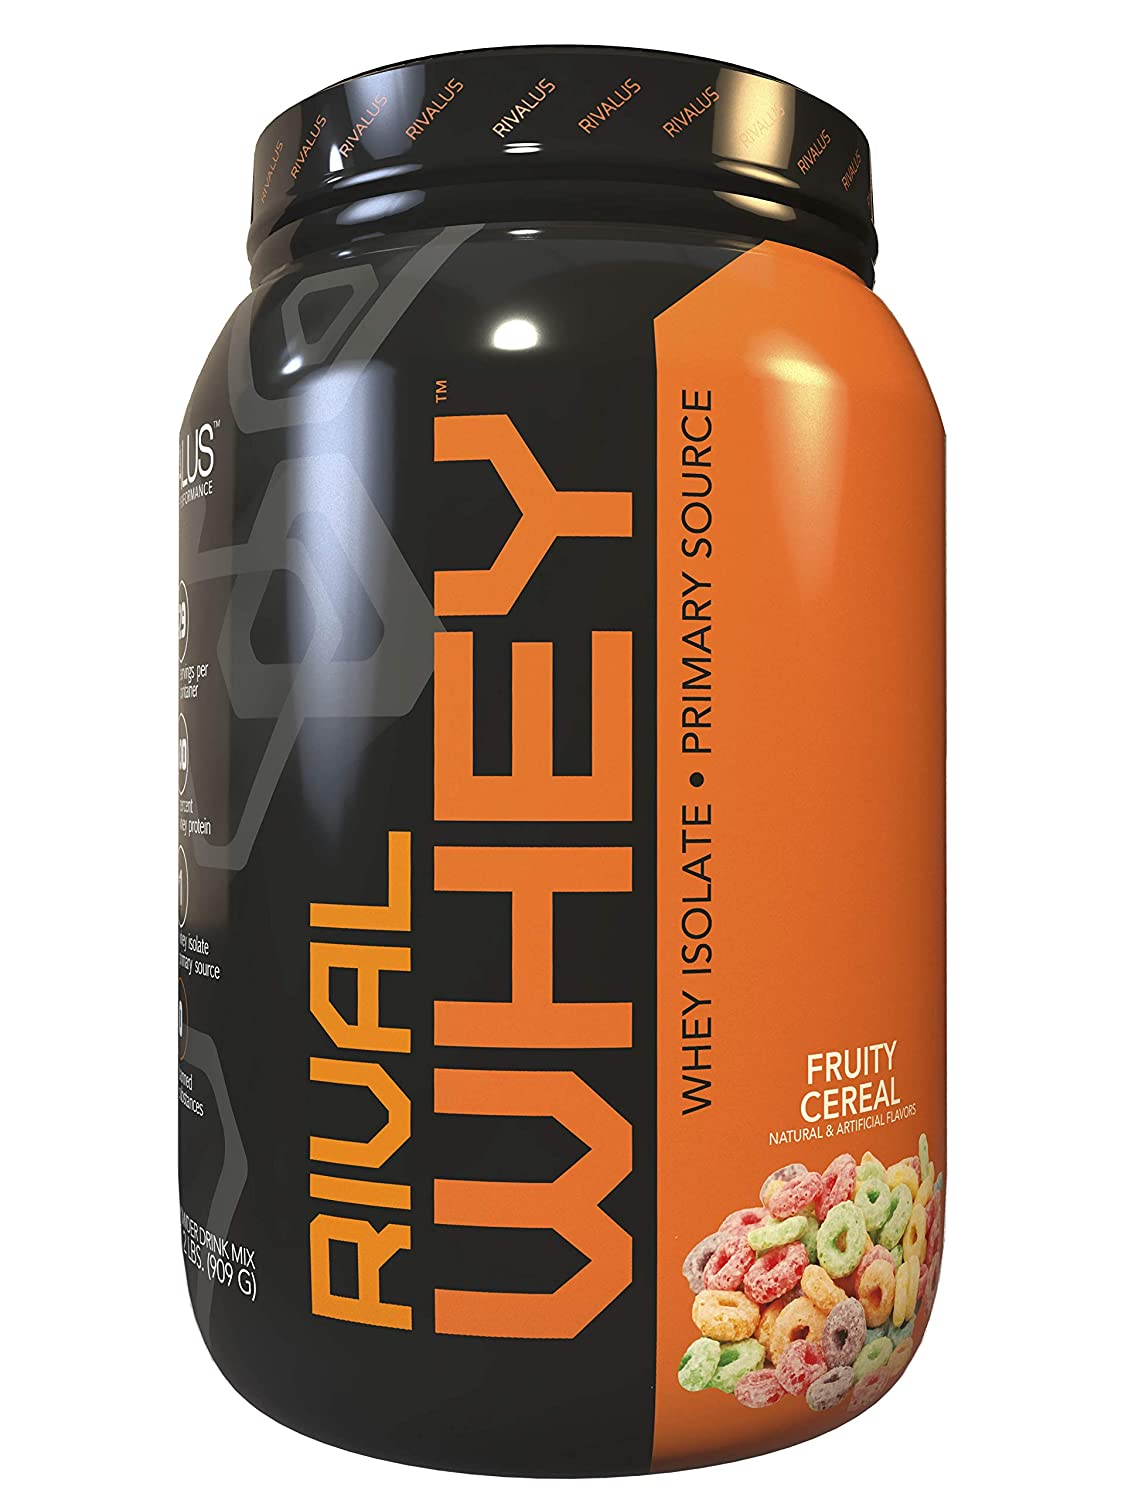 Rivalus Rivalwhey Fruity Cereal 2lb – 100 Whey Protein, Whey Protein Isolate Primary Source, Clean Nutritional Profile, BCAAs, No Banned Substances, Made in USA